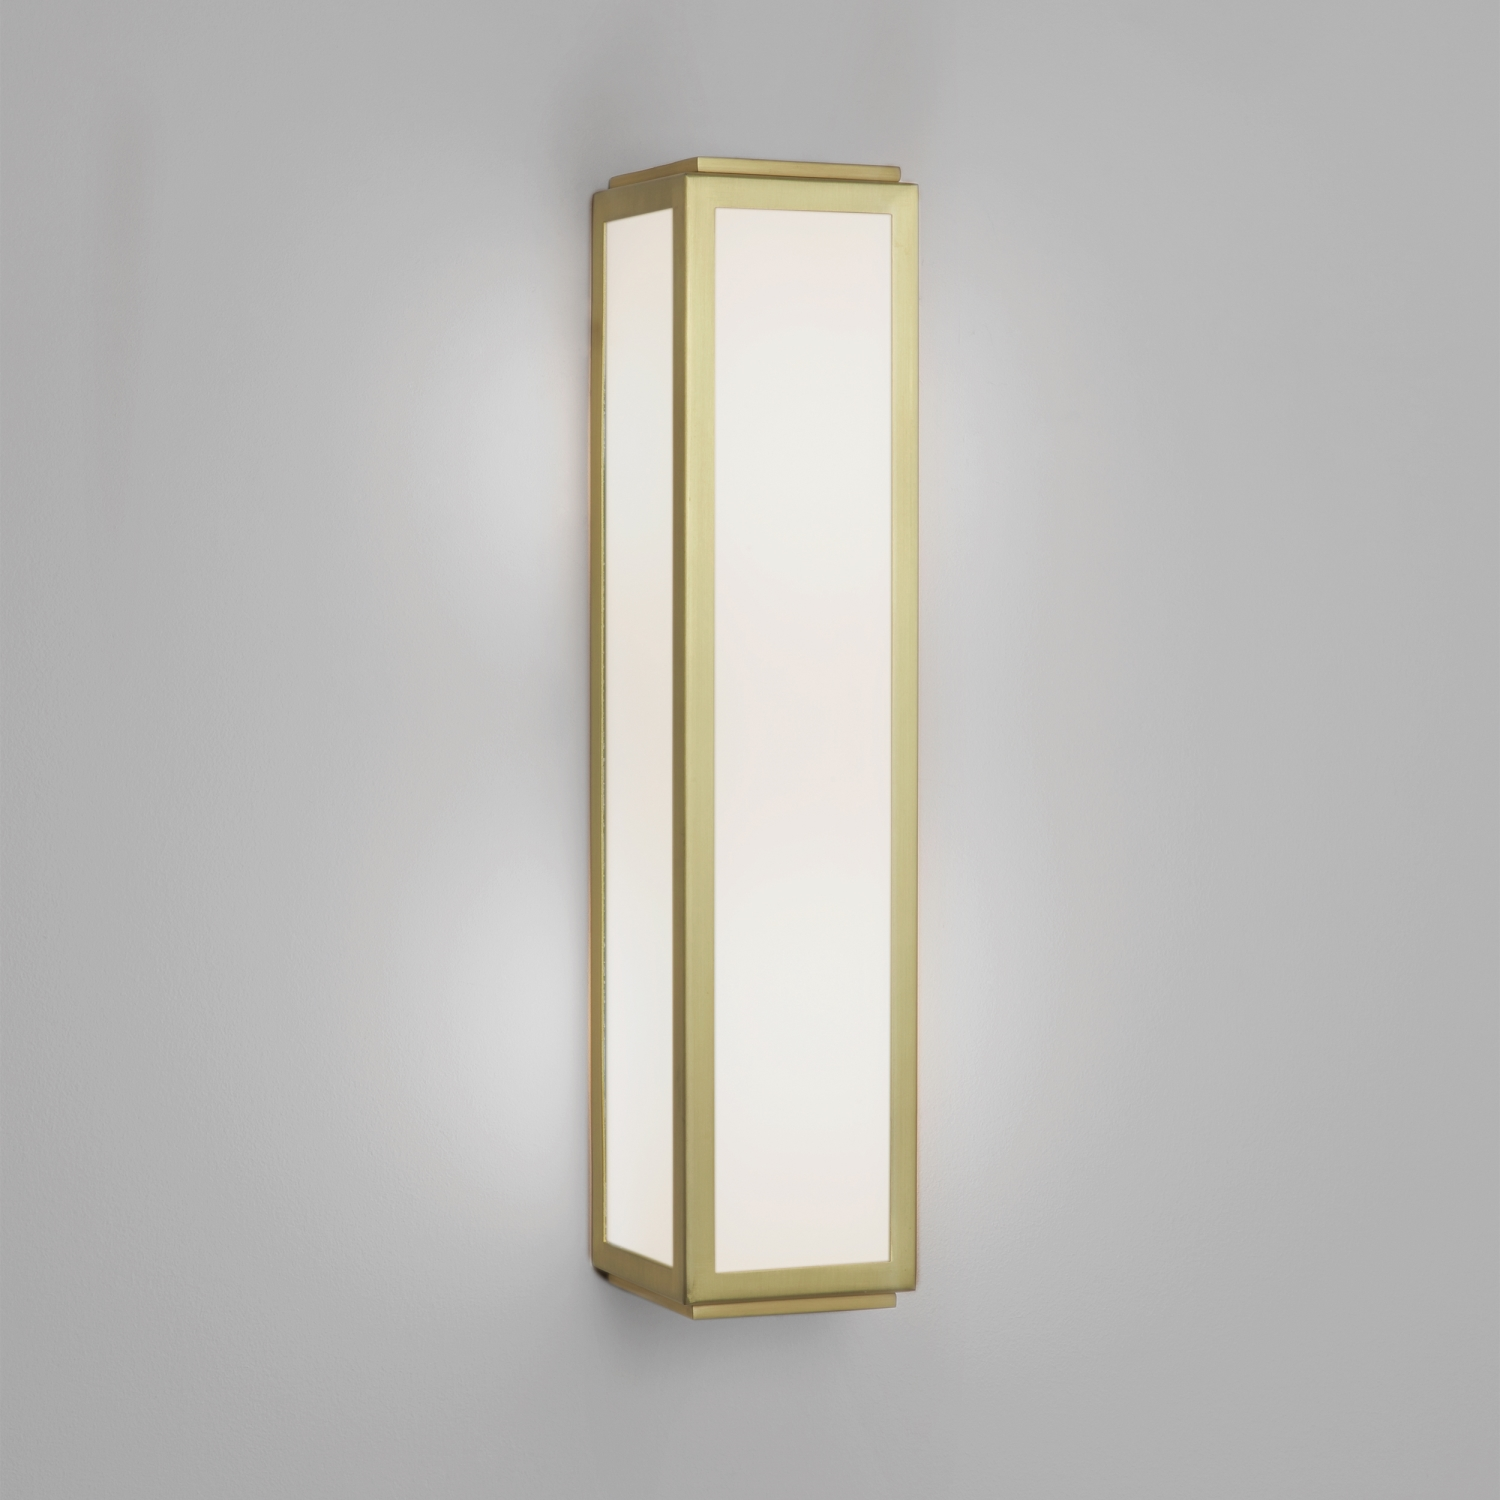 ASTRO MASHIKO 360 classic Bathroom wall light 2 x 40W E14 matt gold